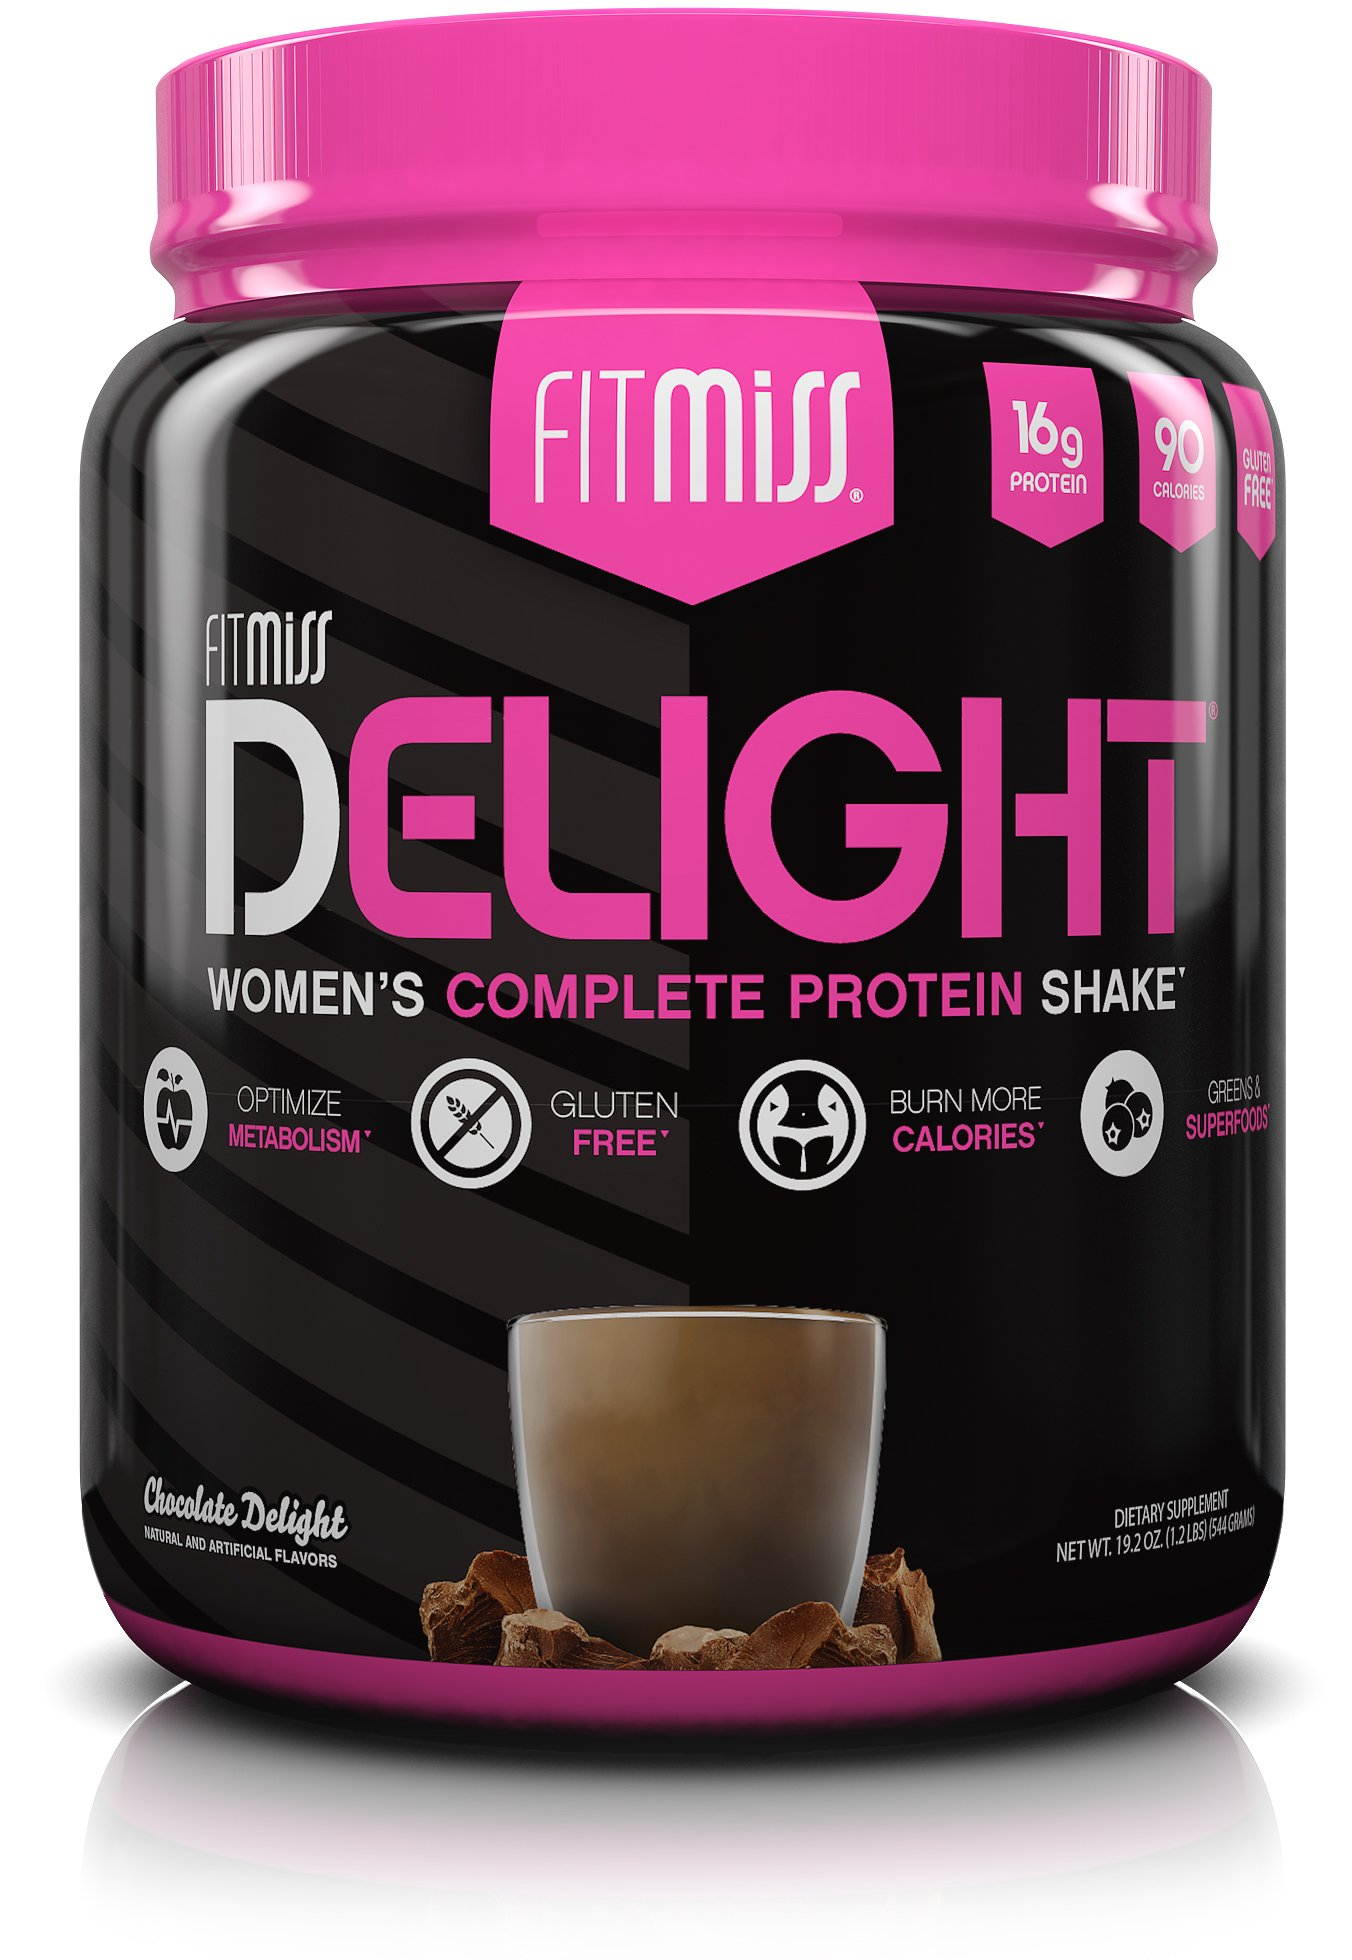 galleon fitmiss delight protein powder healthy